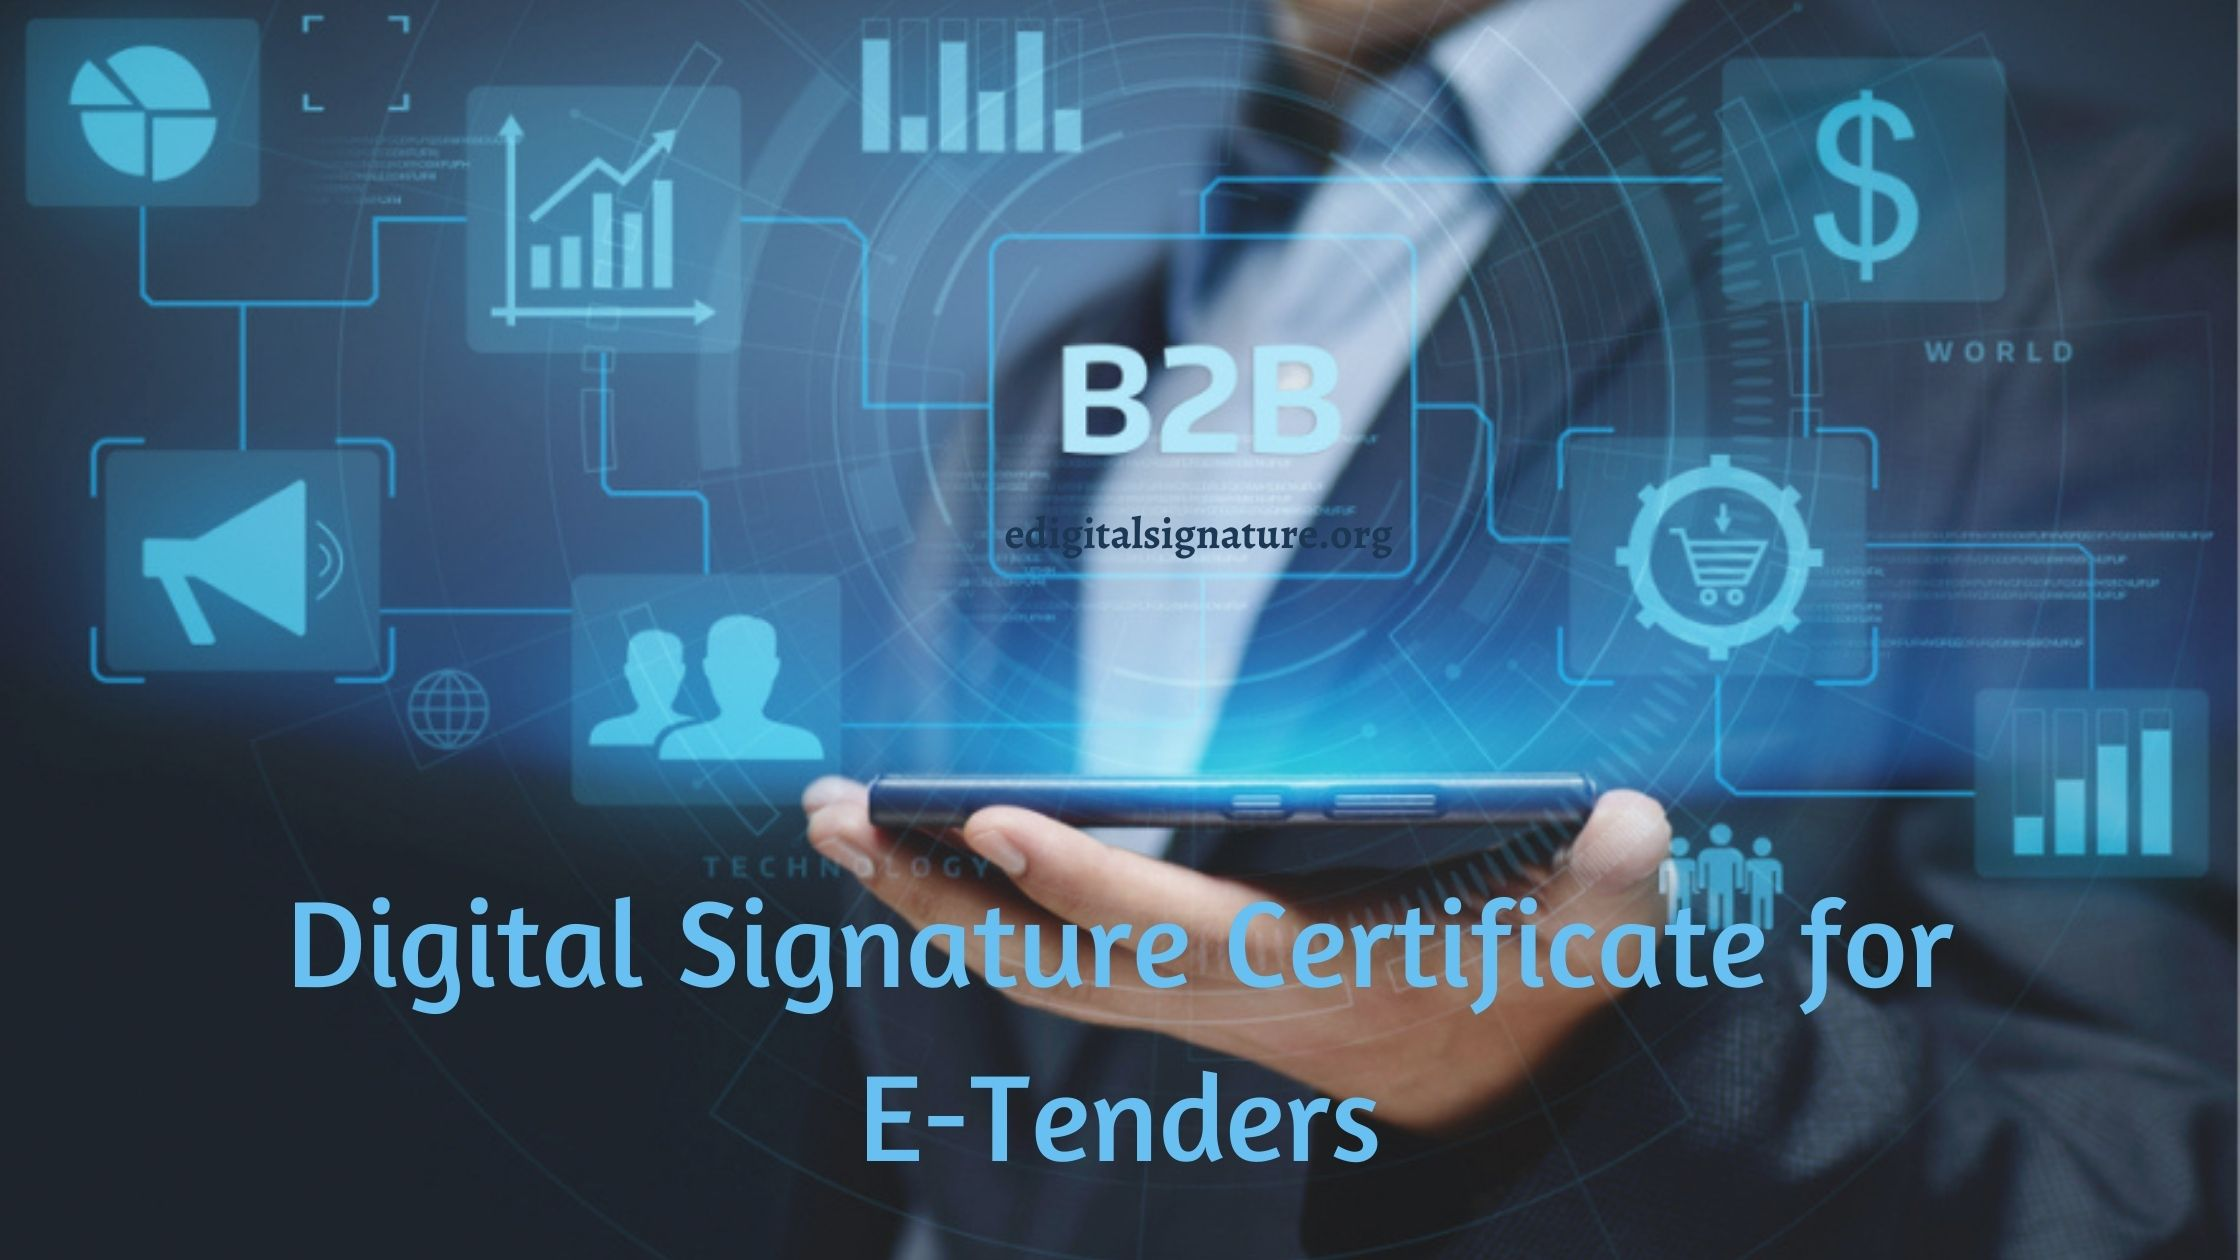 Digital Signature Certificate for E-Tenders